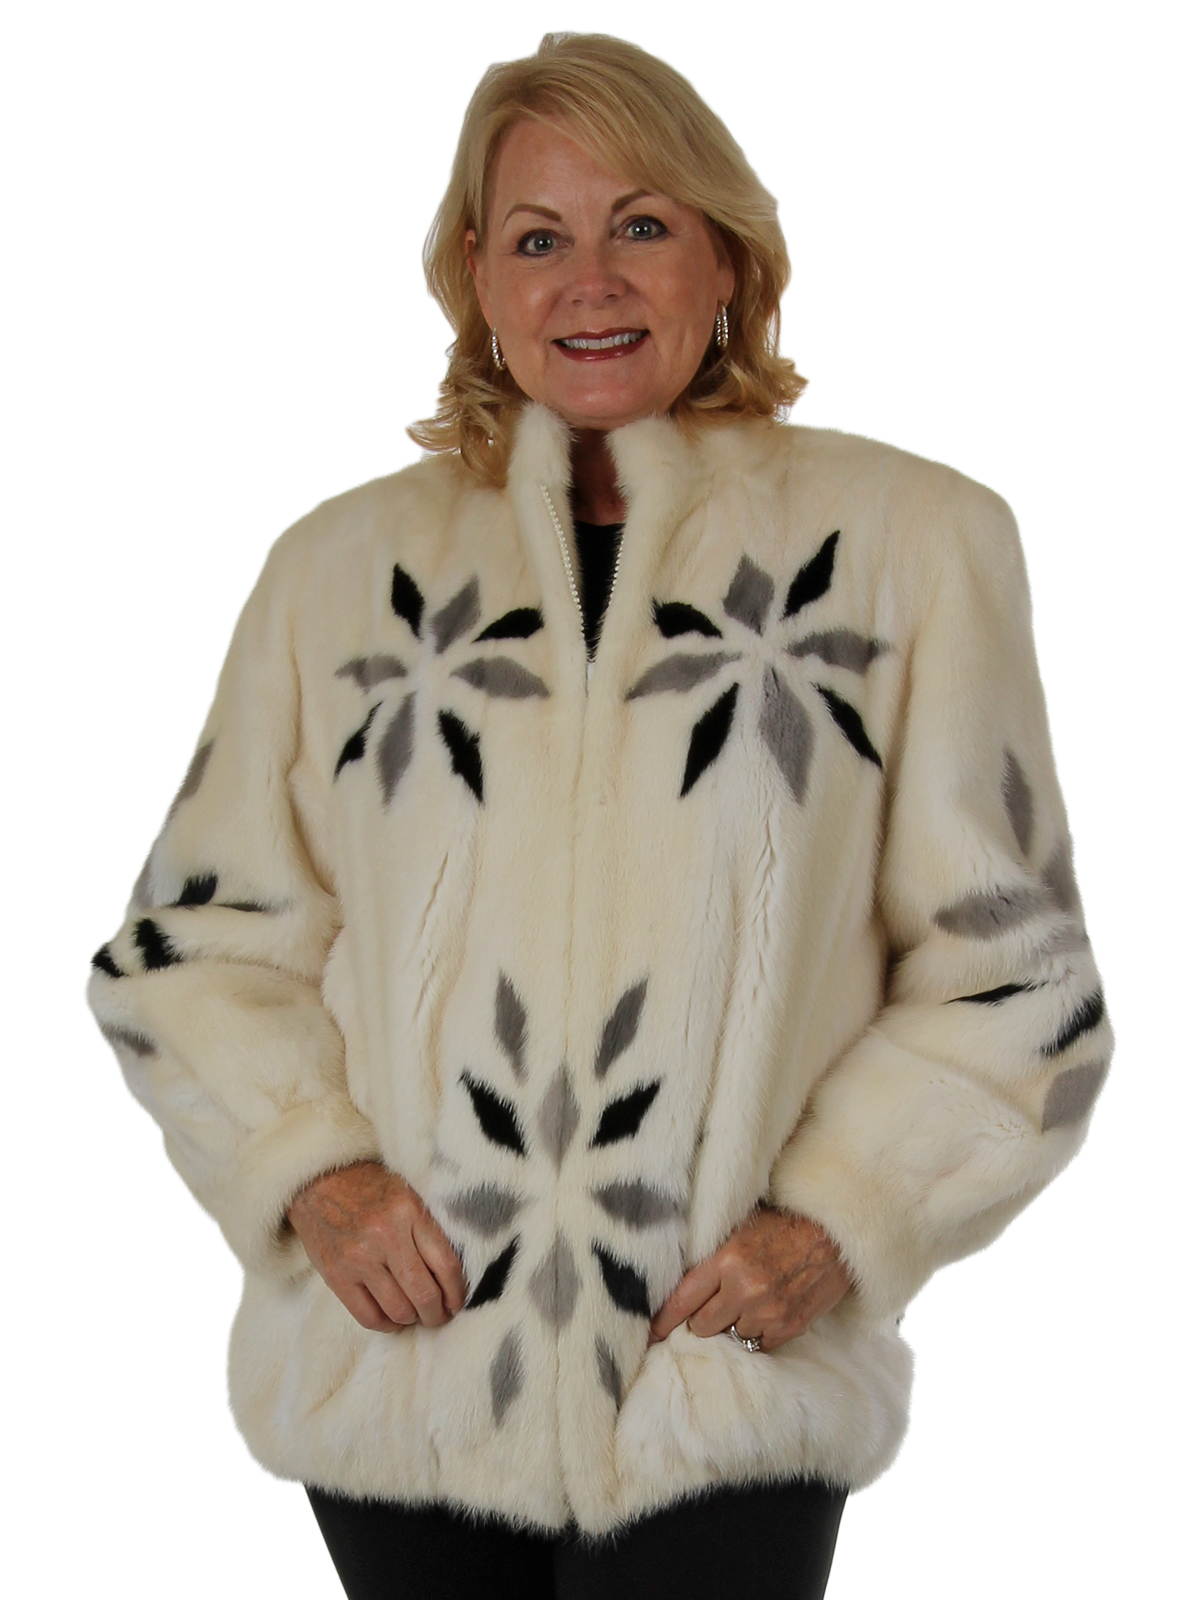 Woman's White Mink Fur Jacket with Black and Grey Mink Inserts